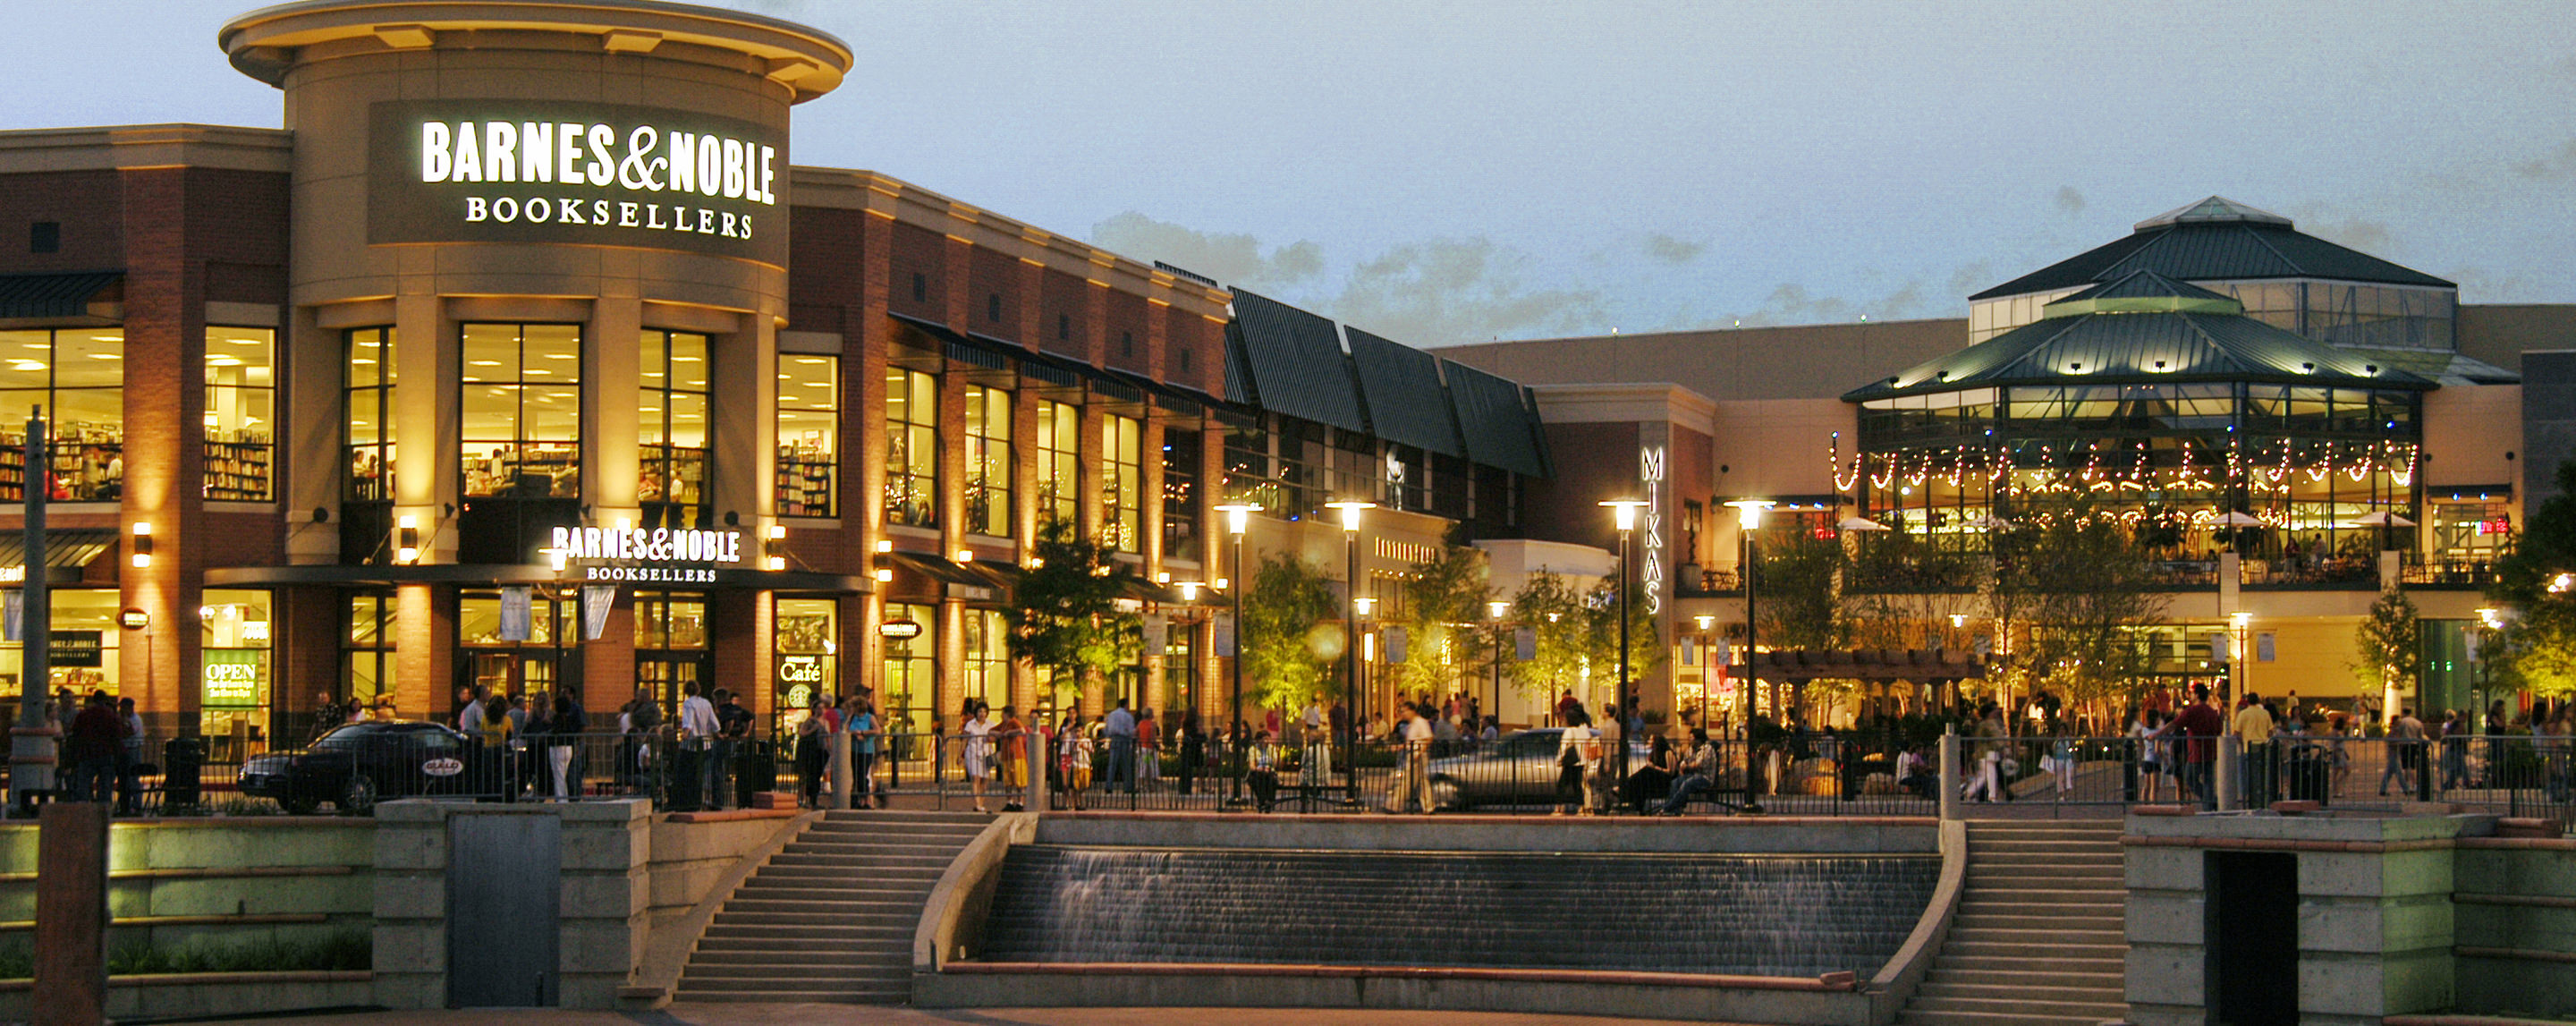 An outside common area at night is light up with a running fountain and areas for shoppers to relax.